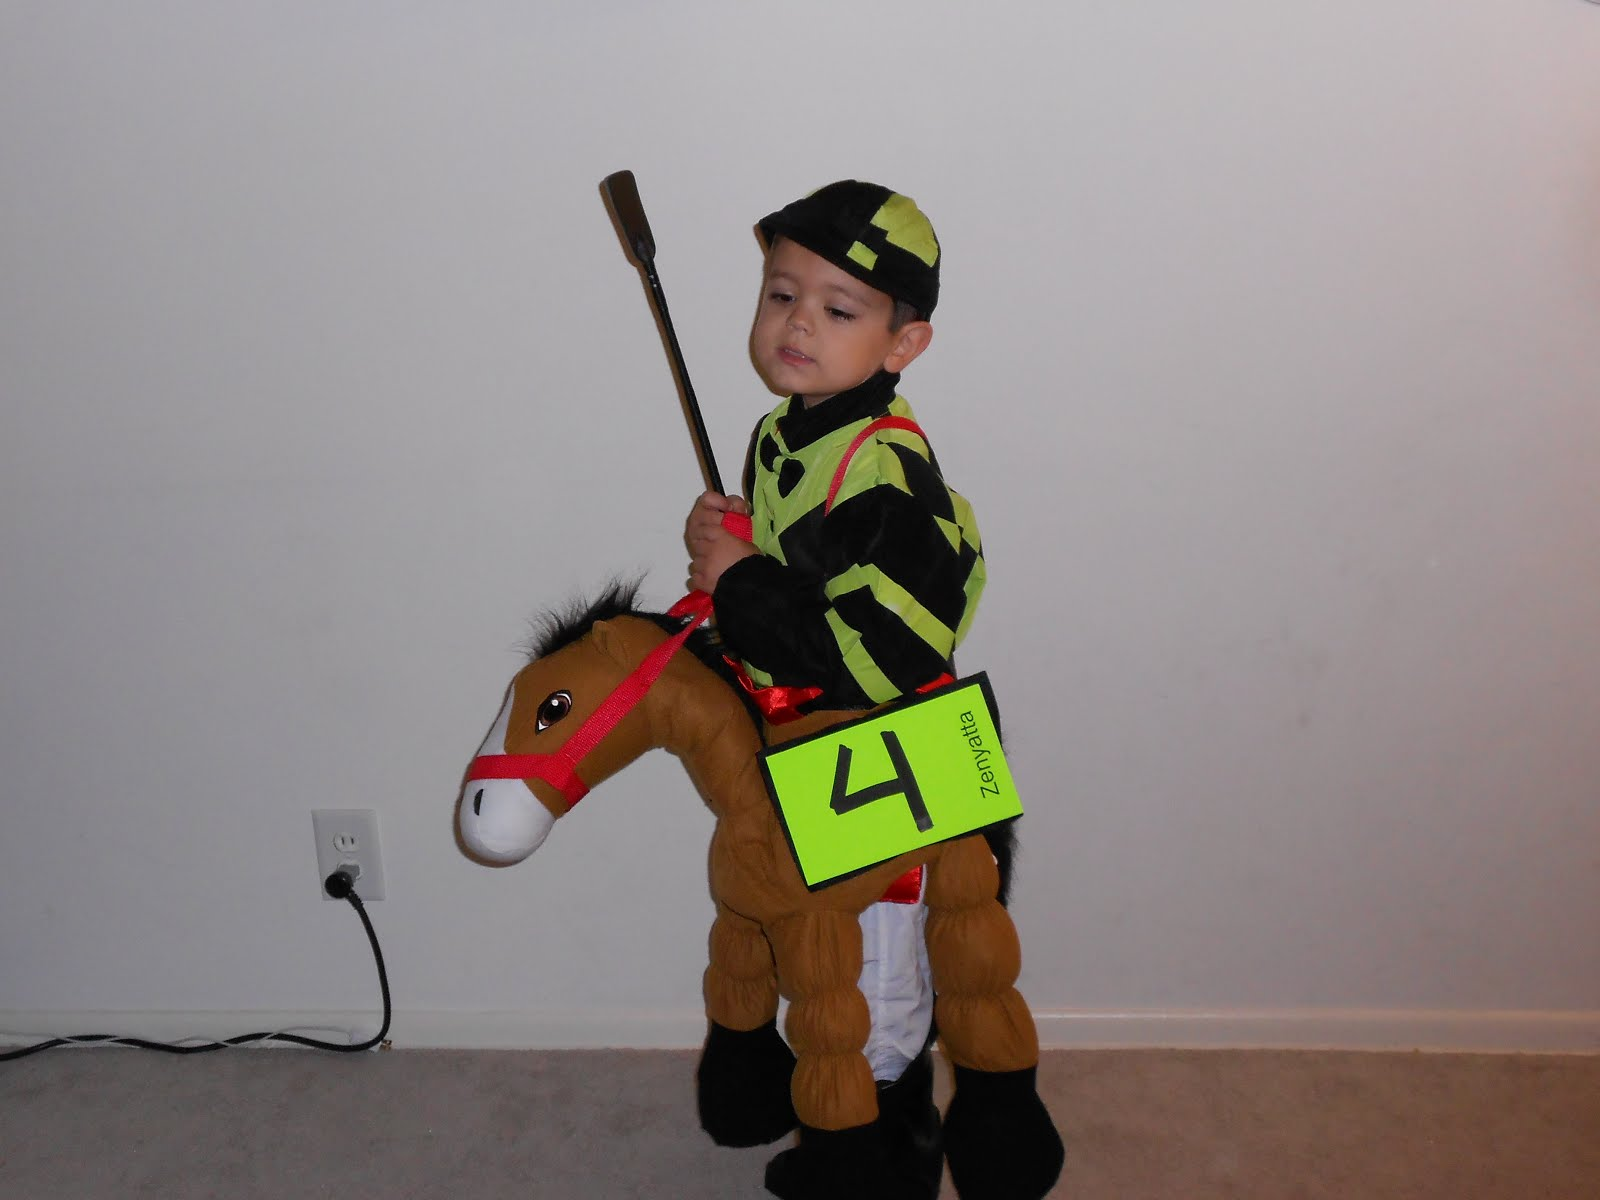 halloween costume contest jockey on horse